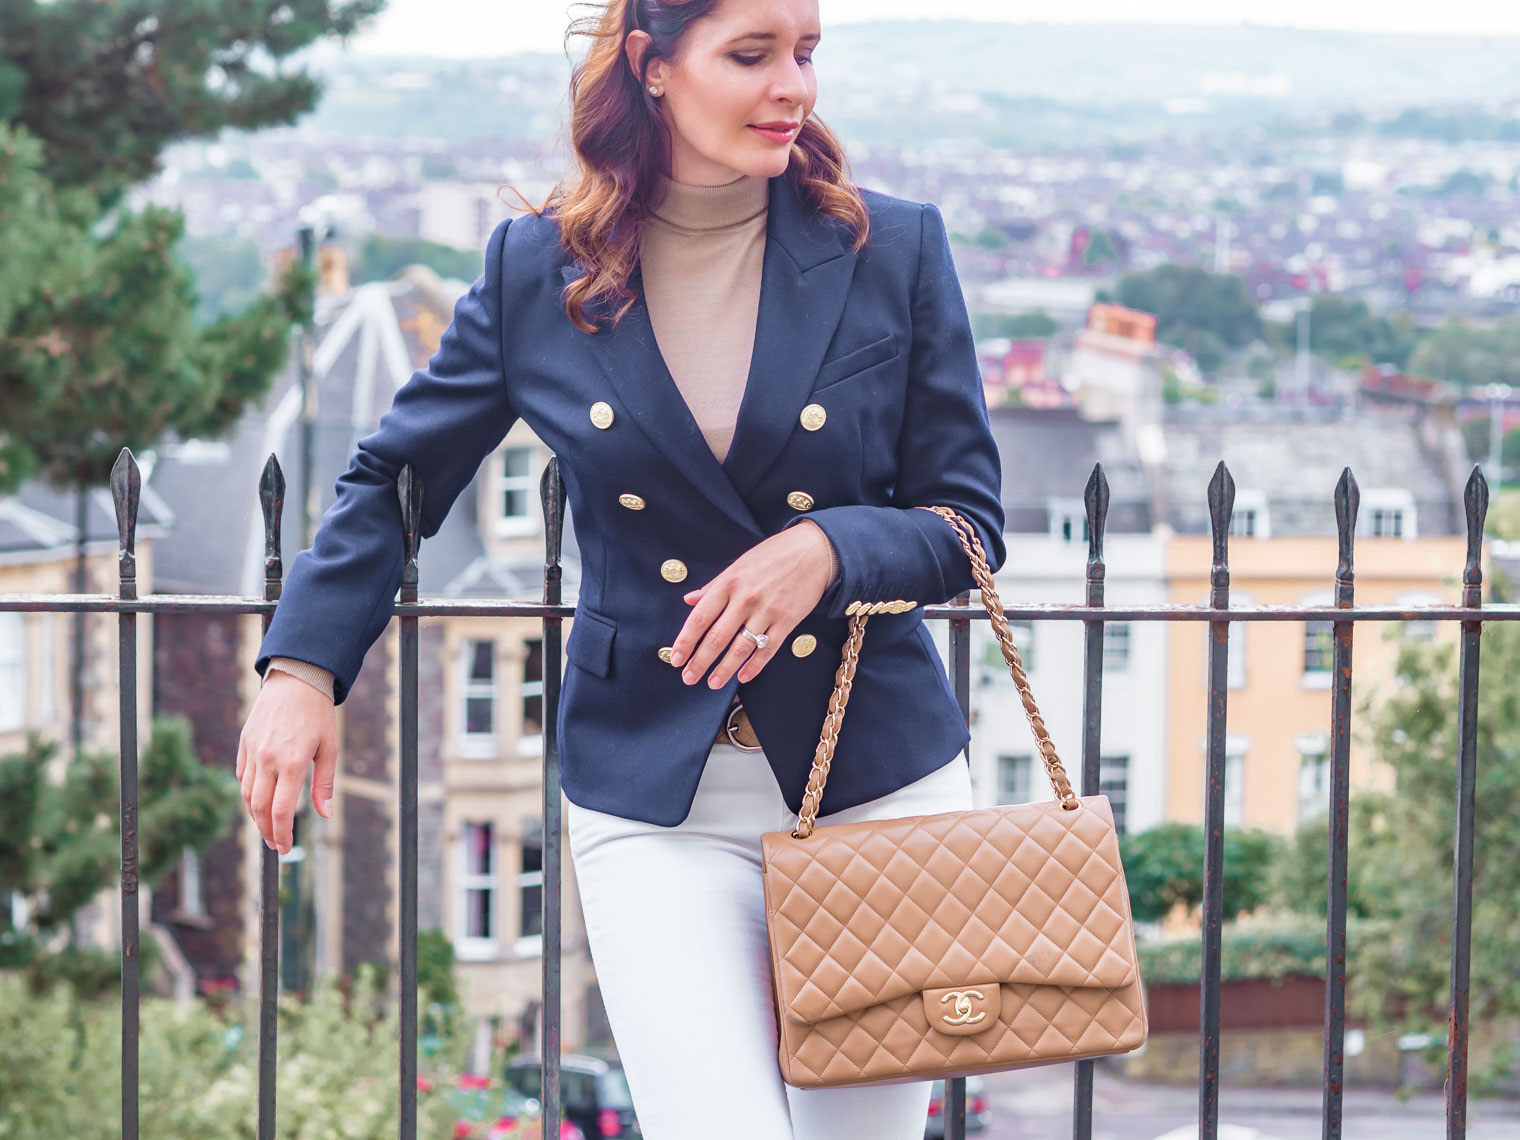 Double breasted navy blue Holland Cooper blazer classic Chanel jumbo flap bag beige